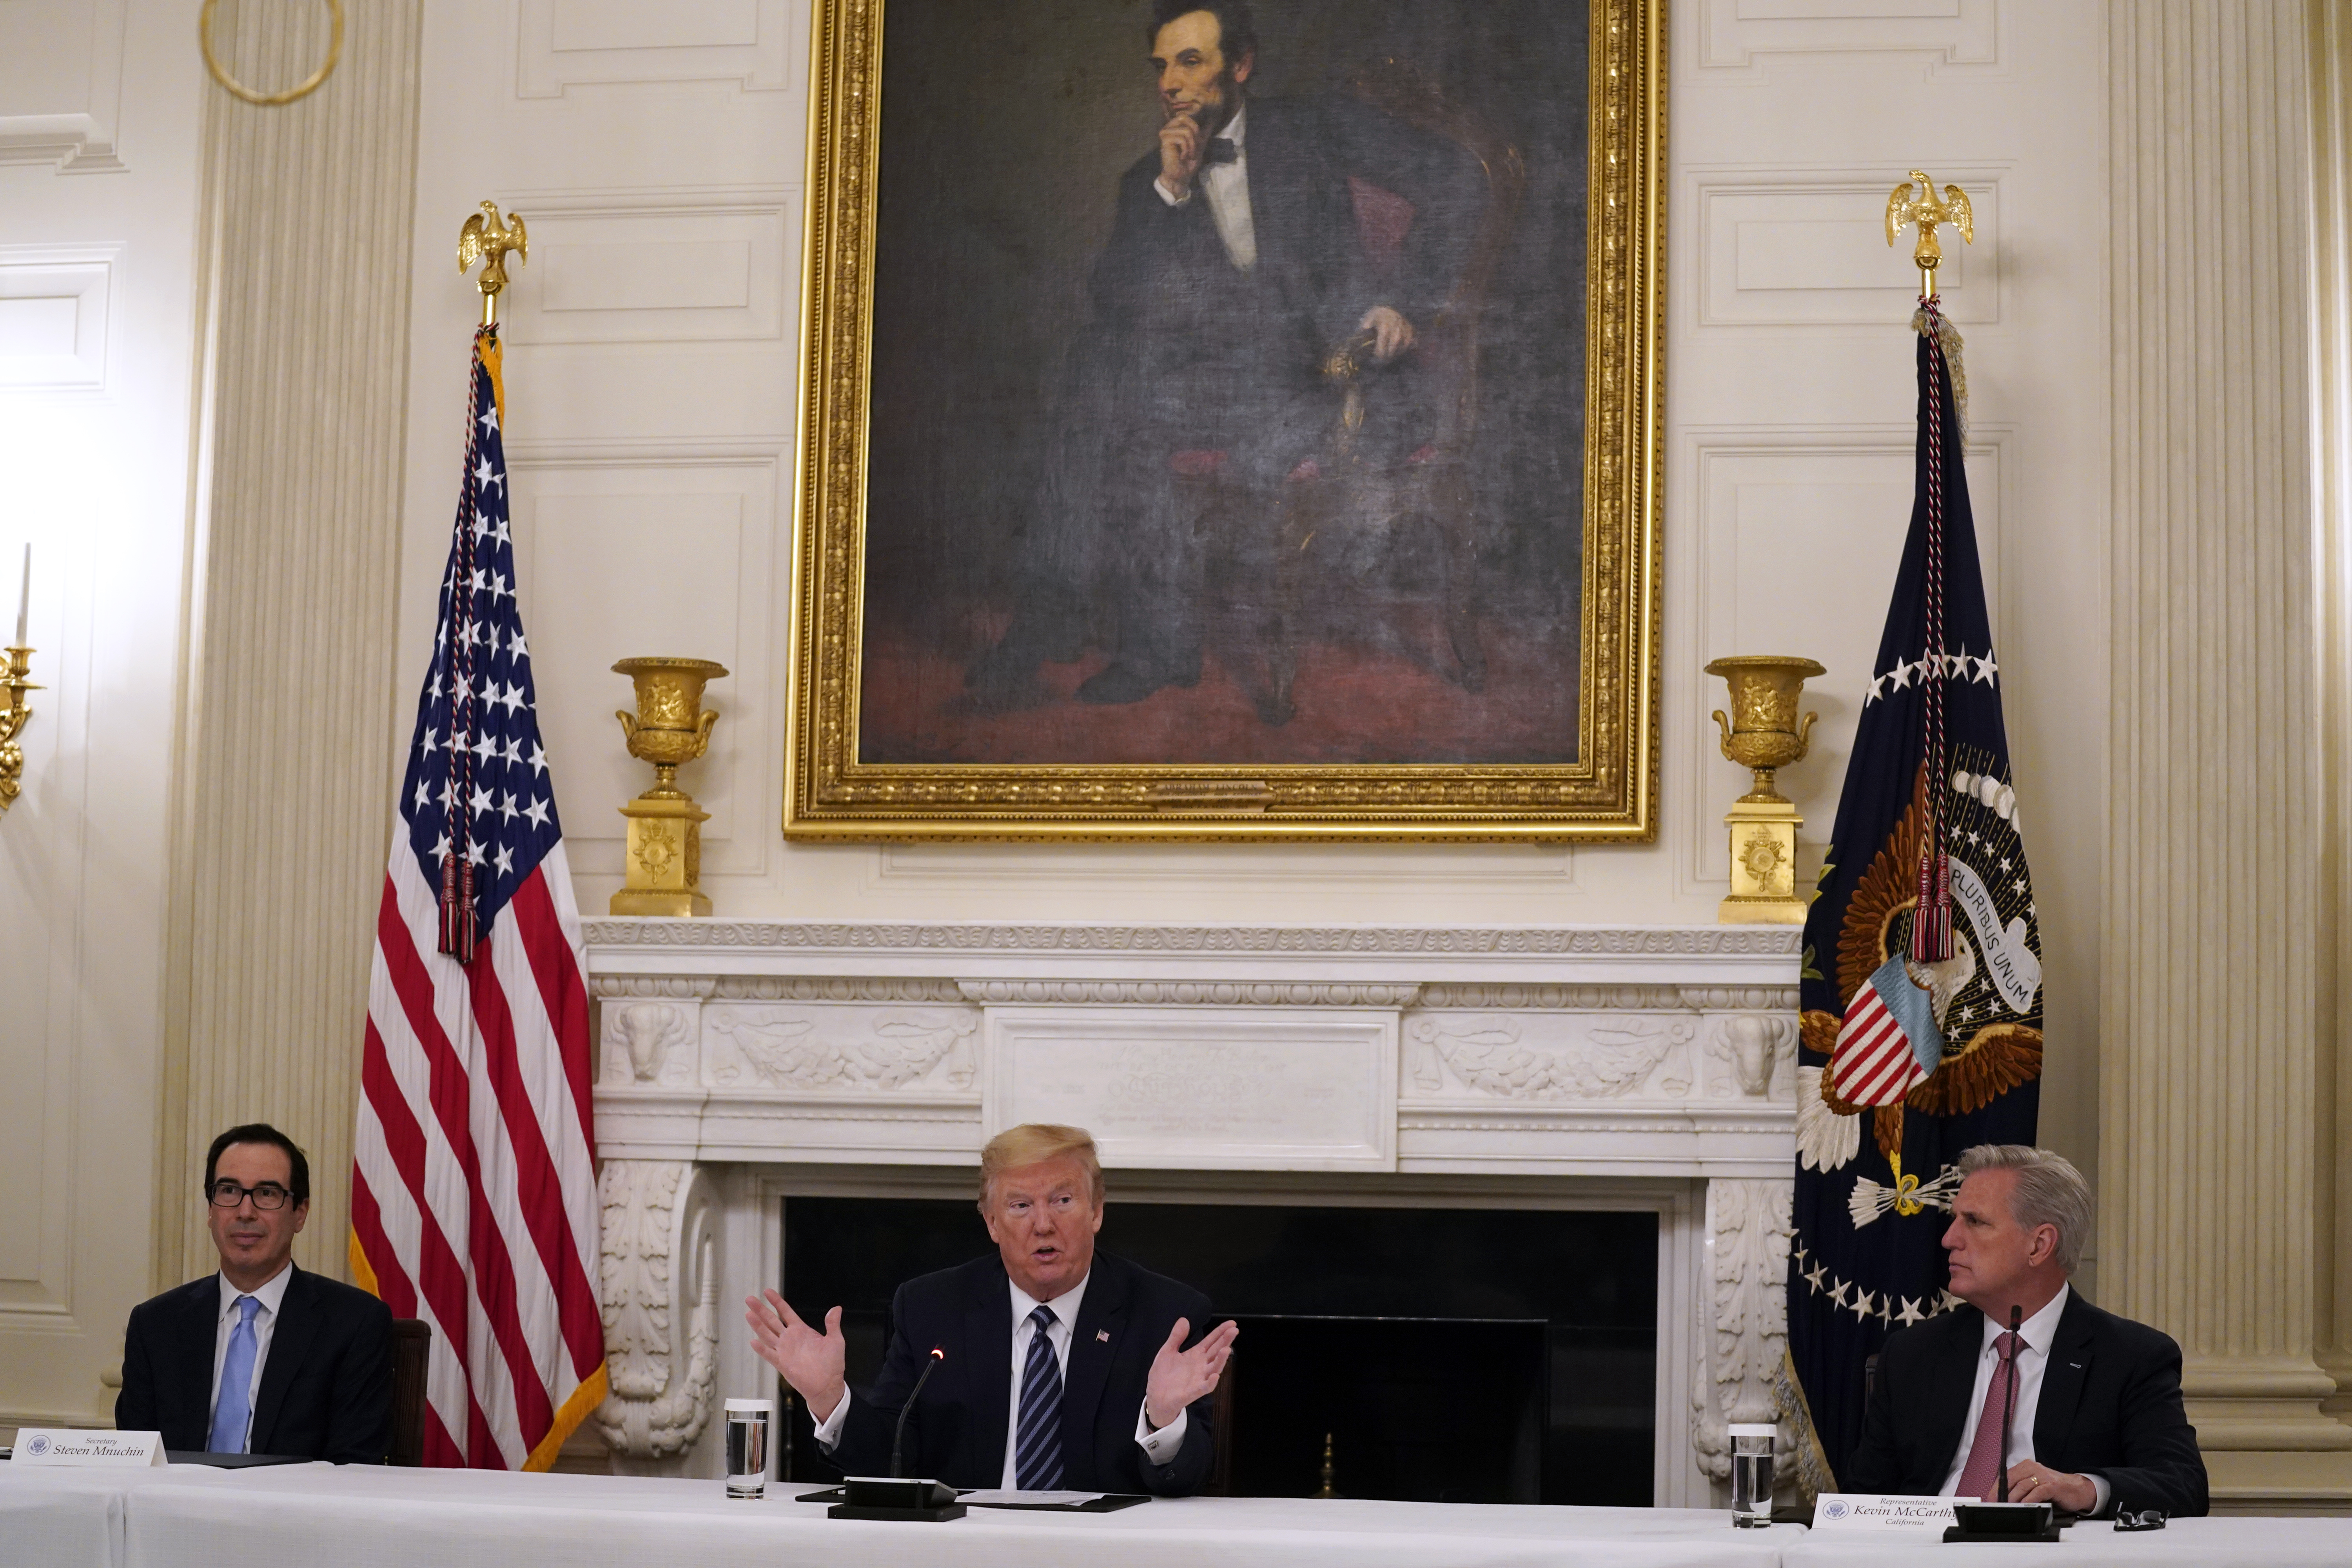 House Minority Leader Kevin McCarthy of Calif., right, and Treasury Secretary Steven Mnuchin, left, listen as President Donald Trump speaks during a meeting with Republican lawmakers, in the State Dining Room of the White House on May 8, 2020, in Washington.